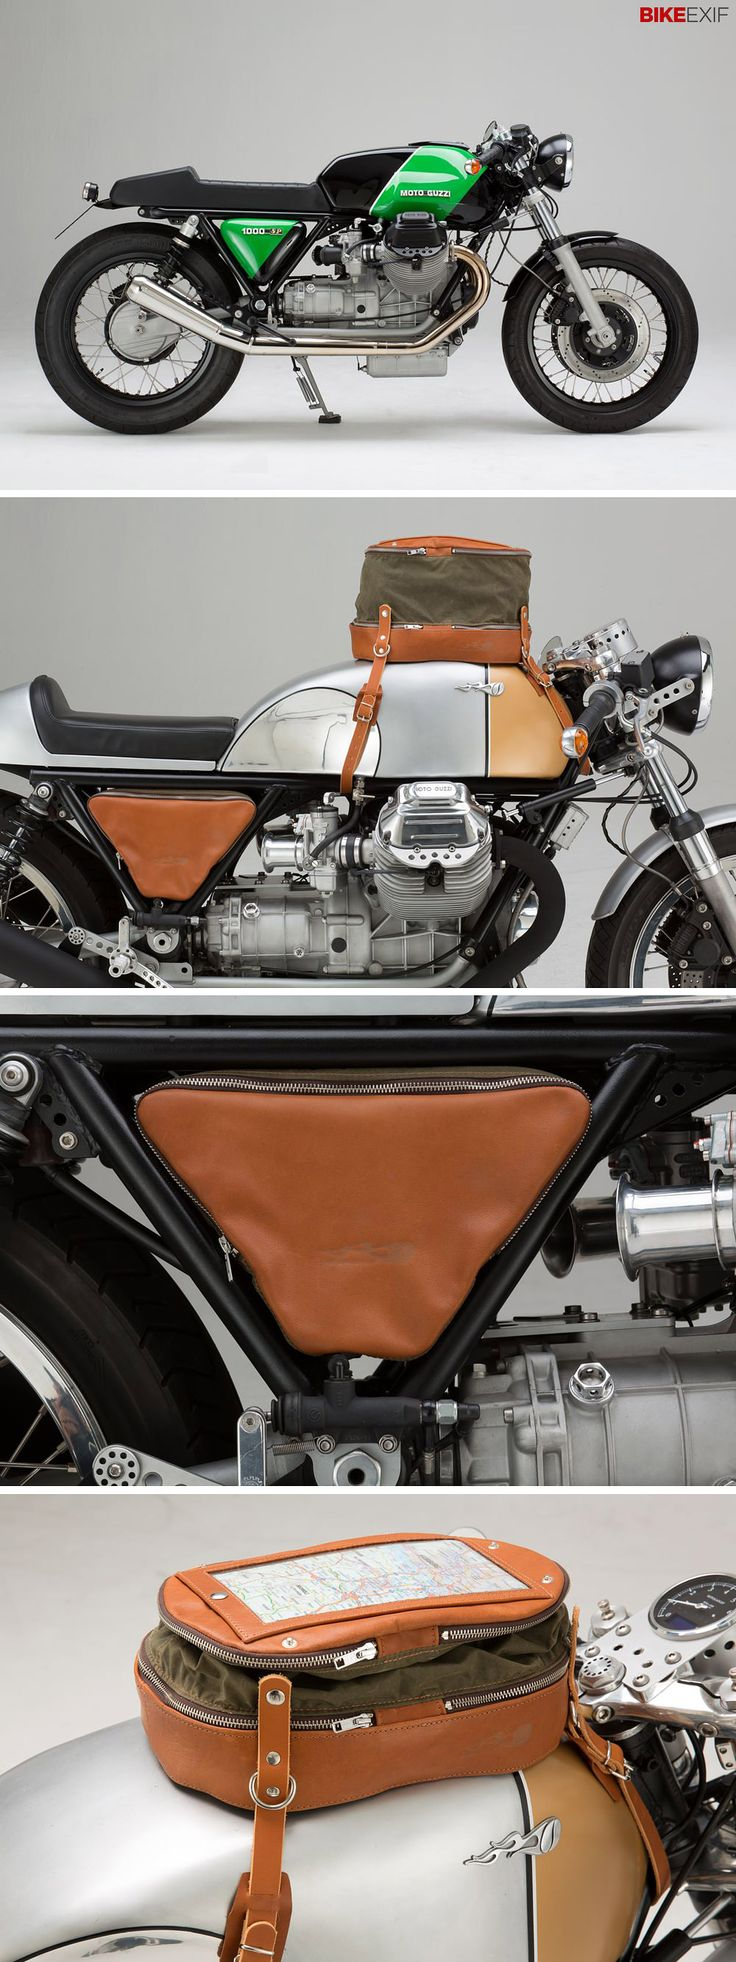 The latest from Hamburg-based Kaffeemaschine is this lovely Moto Guzzi 1000 SP—and a matching set of luggage designed for classics and cafe racers.